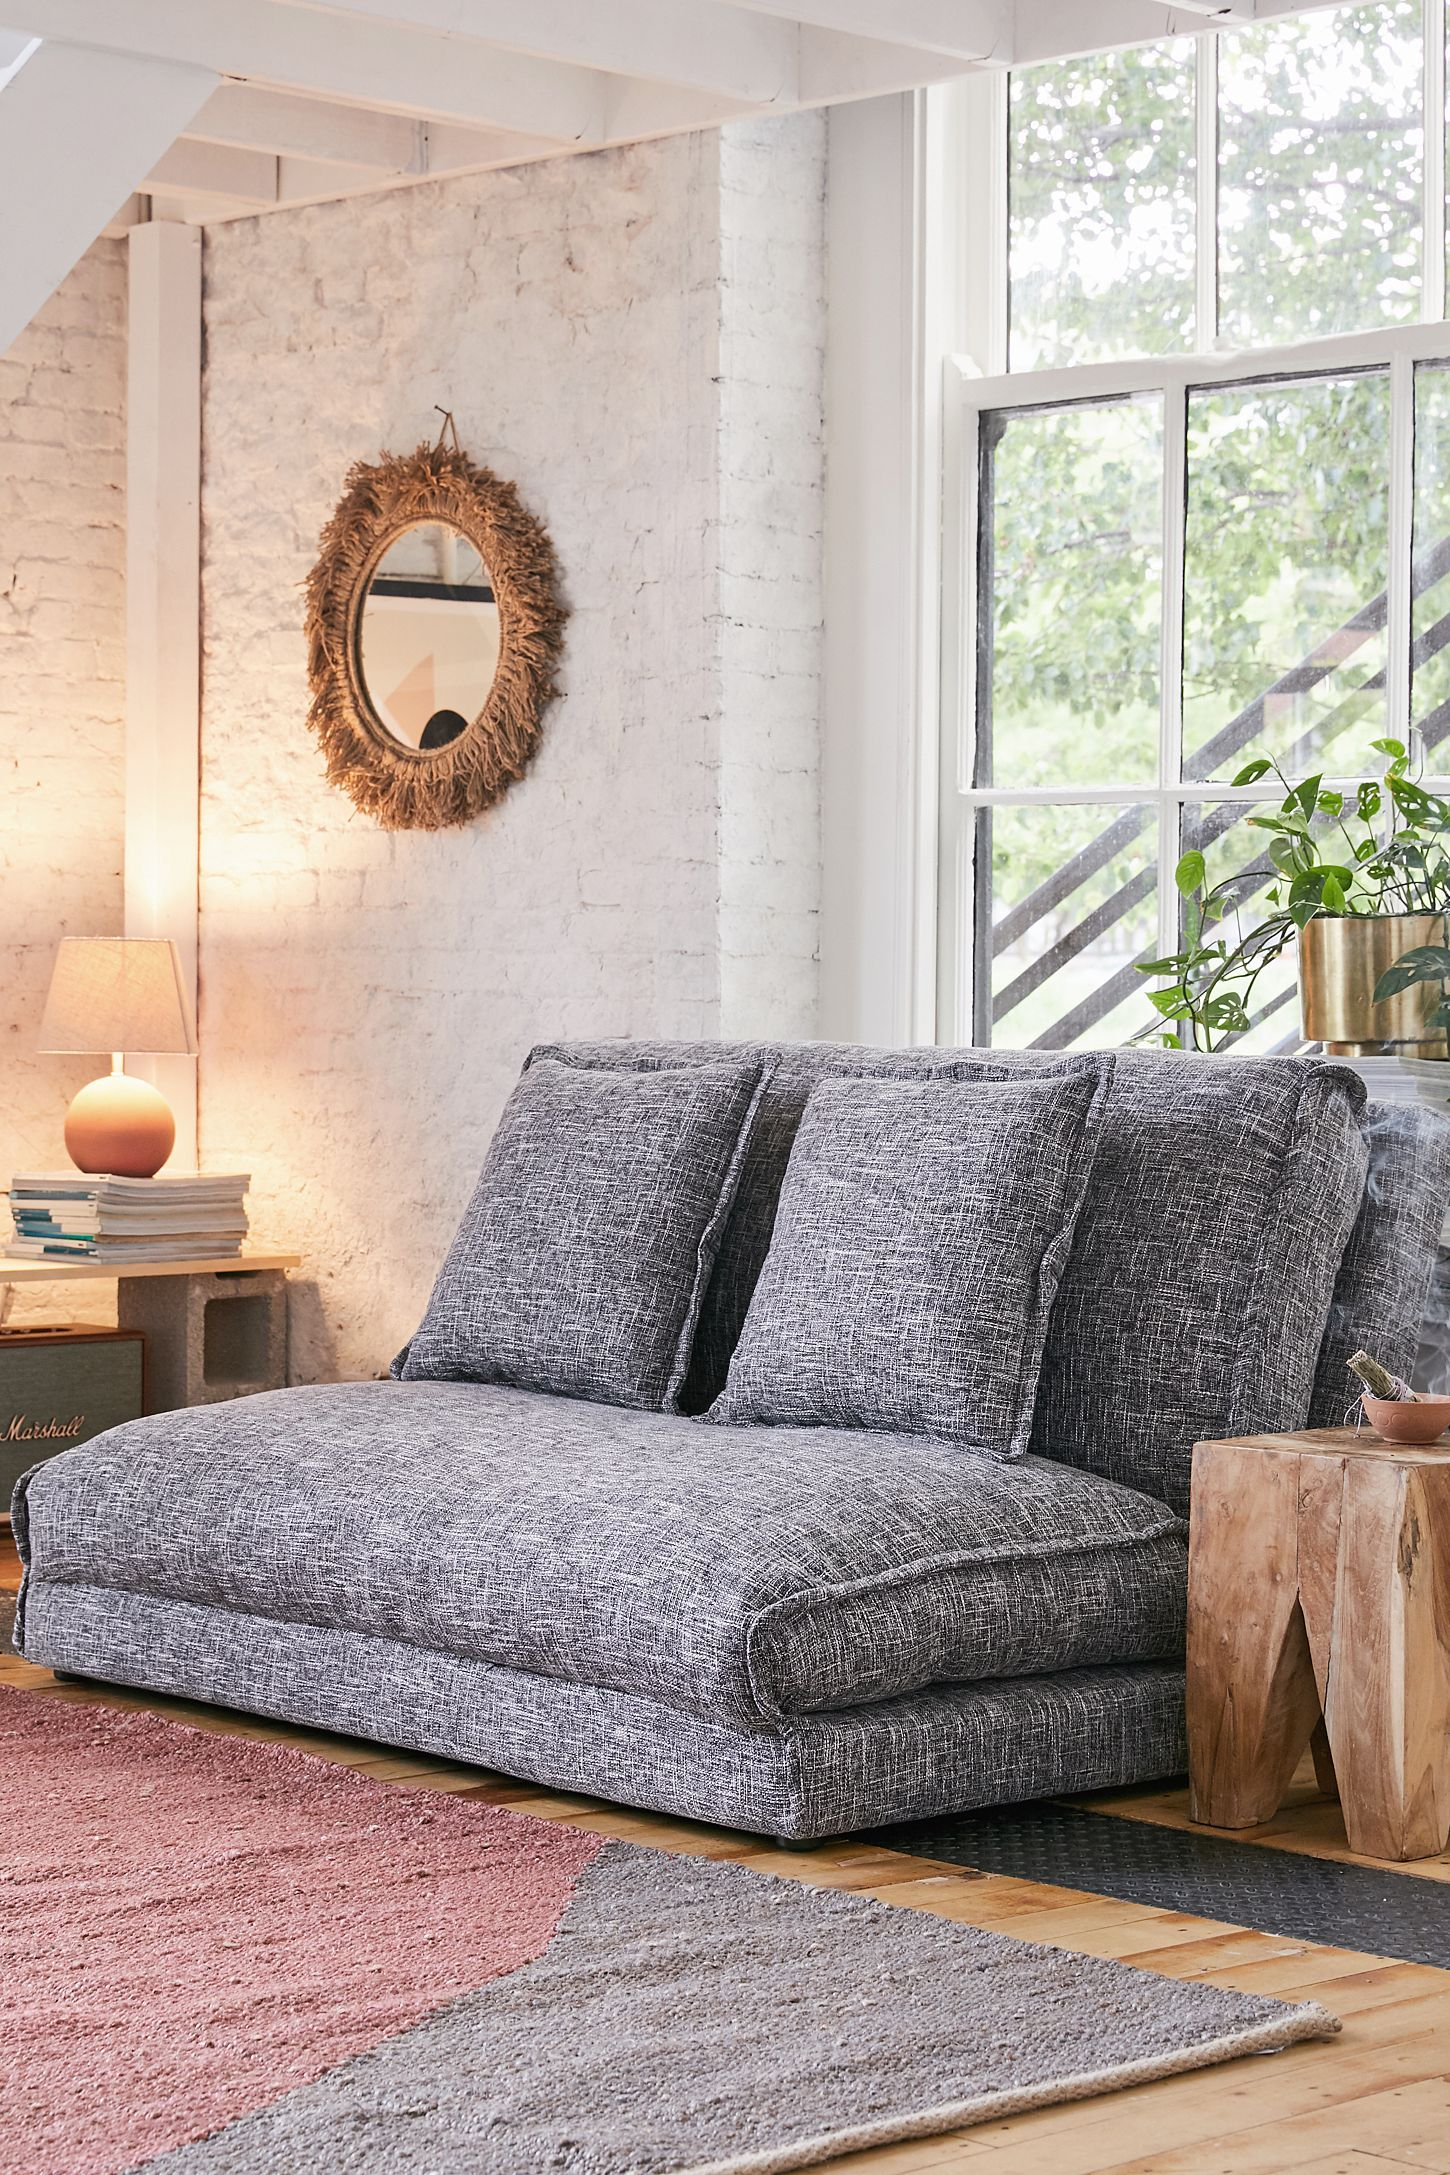 Bedroom Sofas Beideo Com In 2020 Small Couch In Bedroom